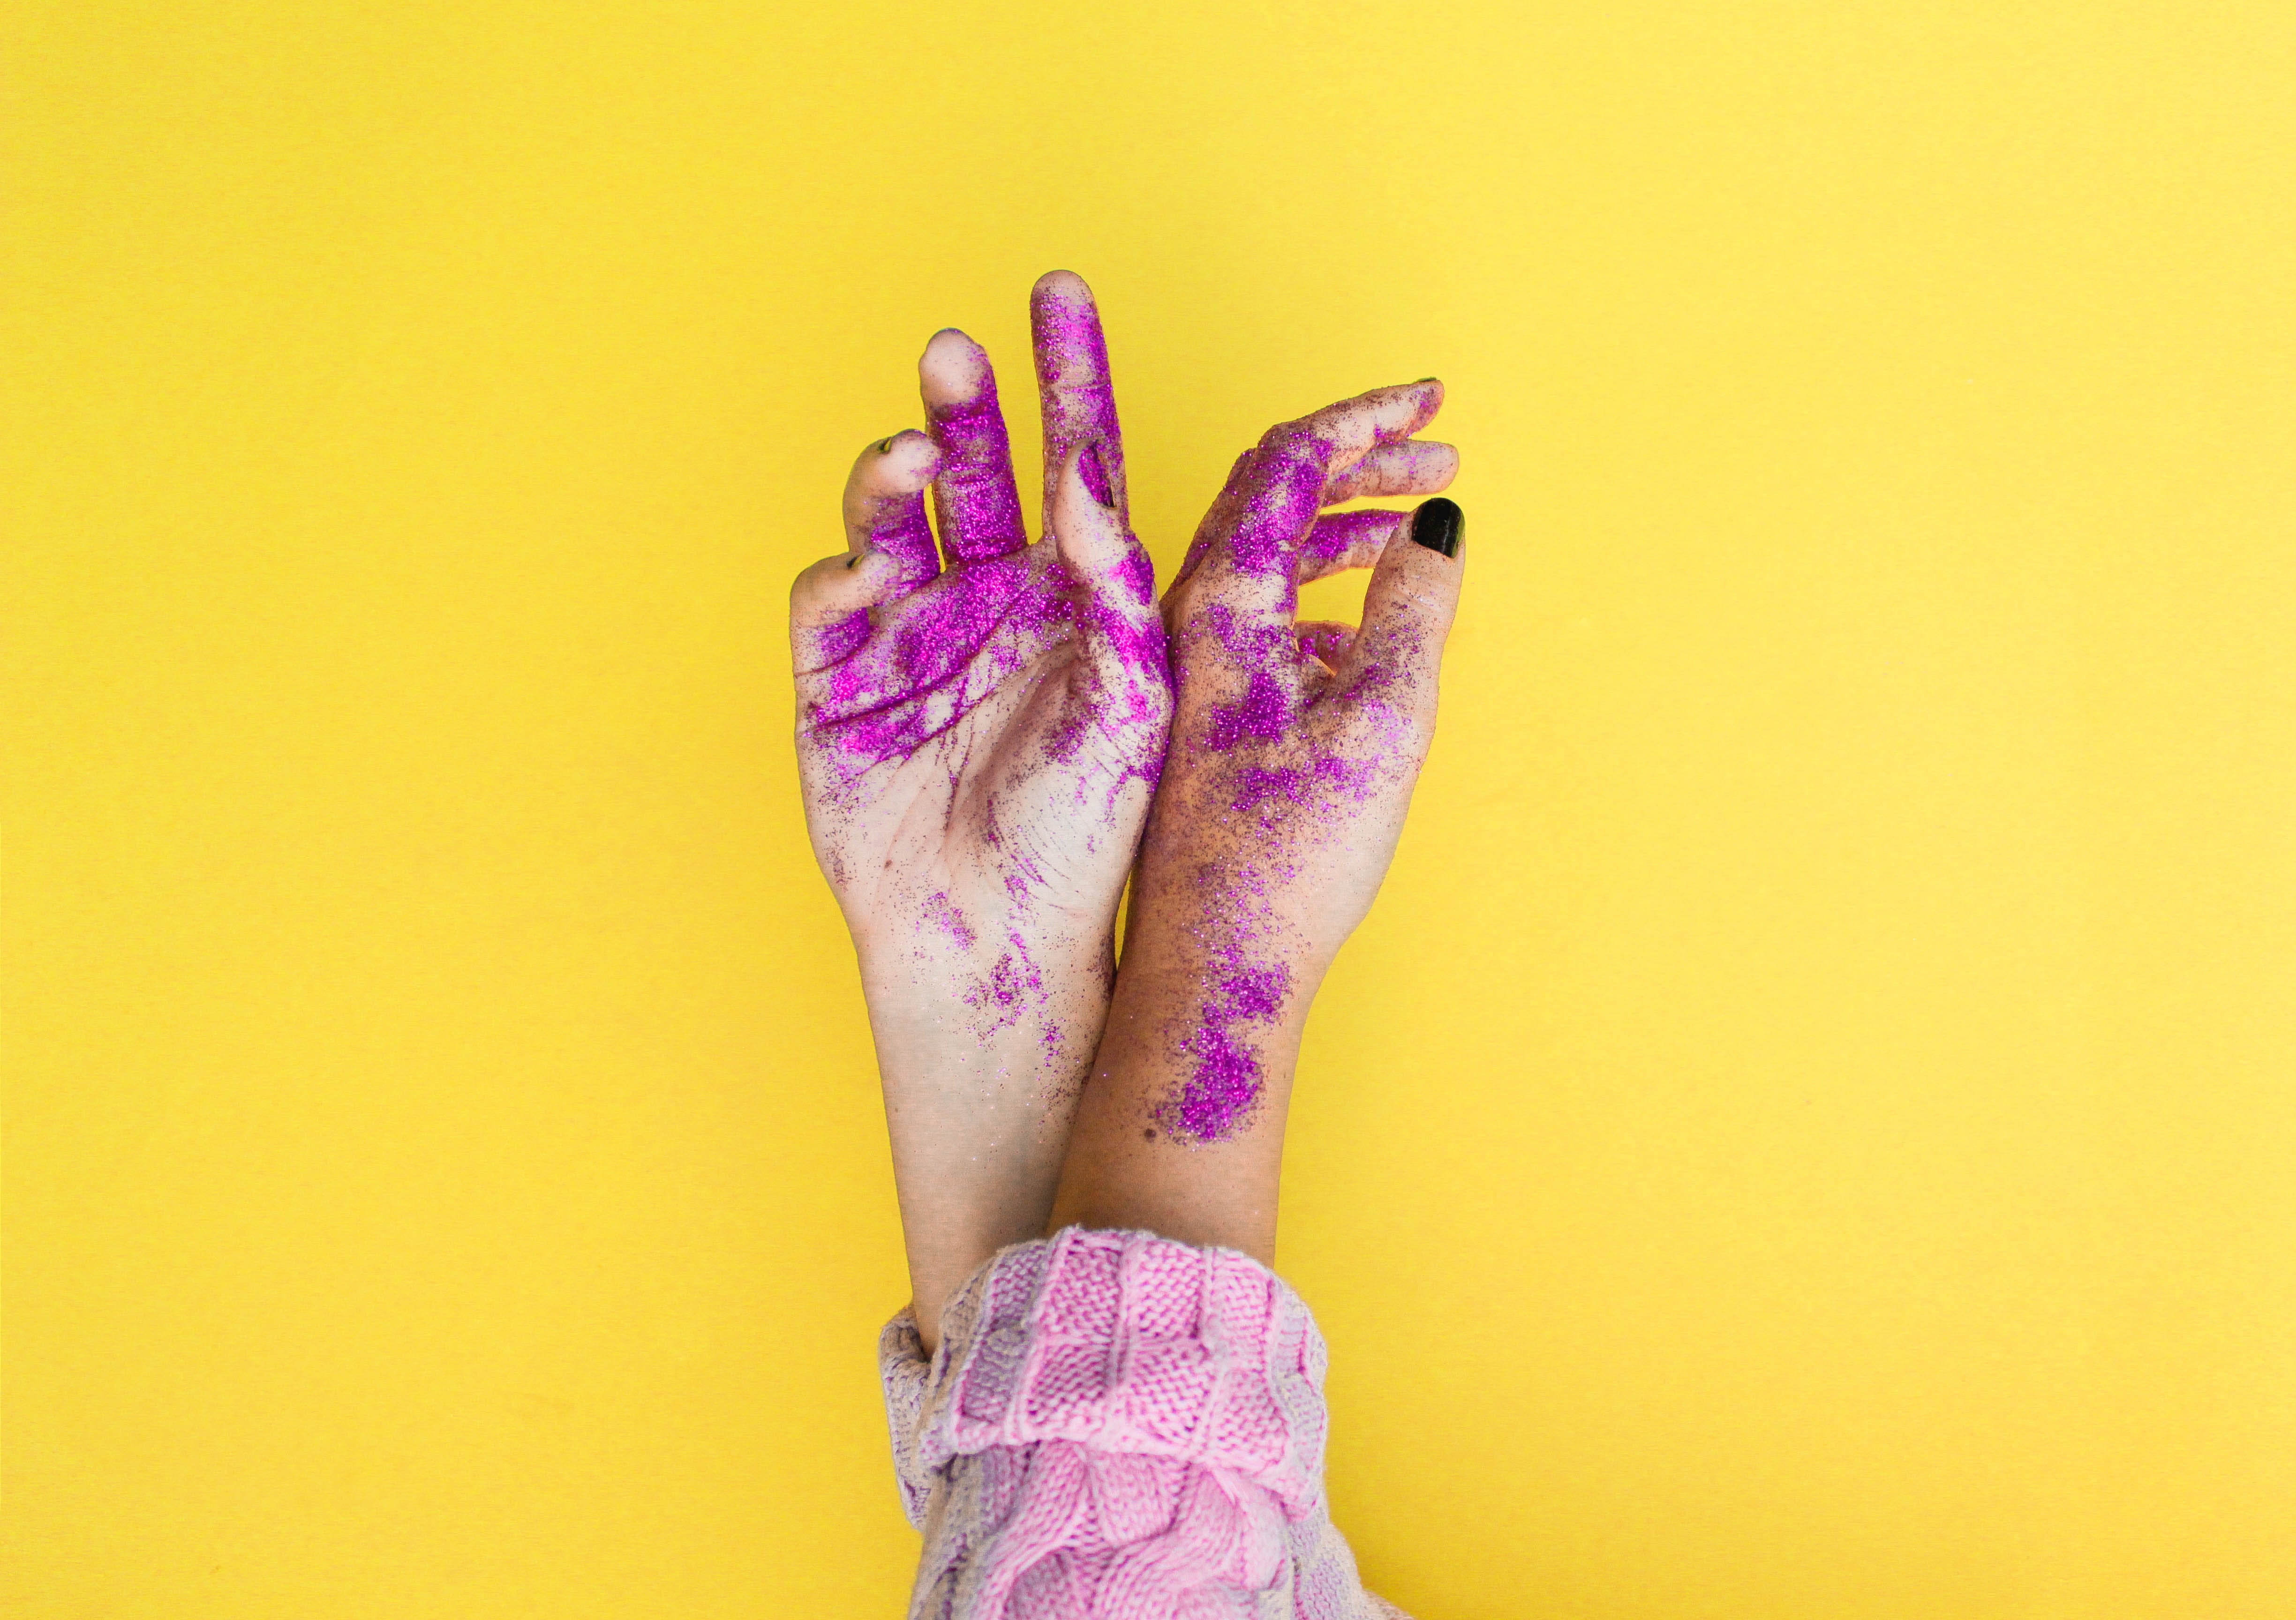 minimalist photography of person's hands with purple glitters